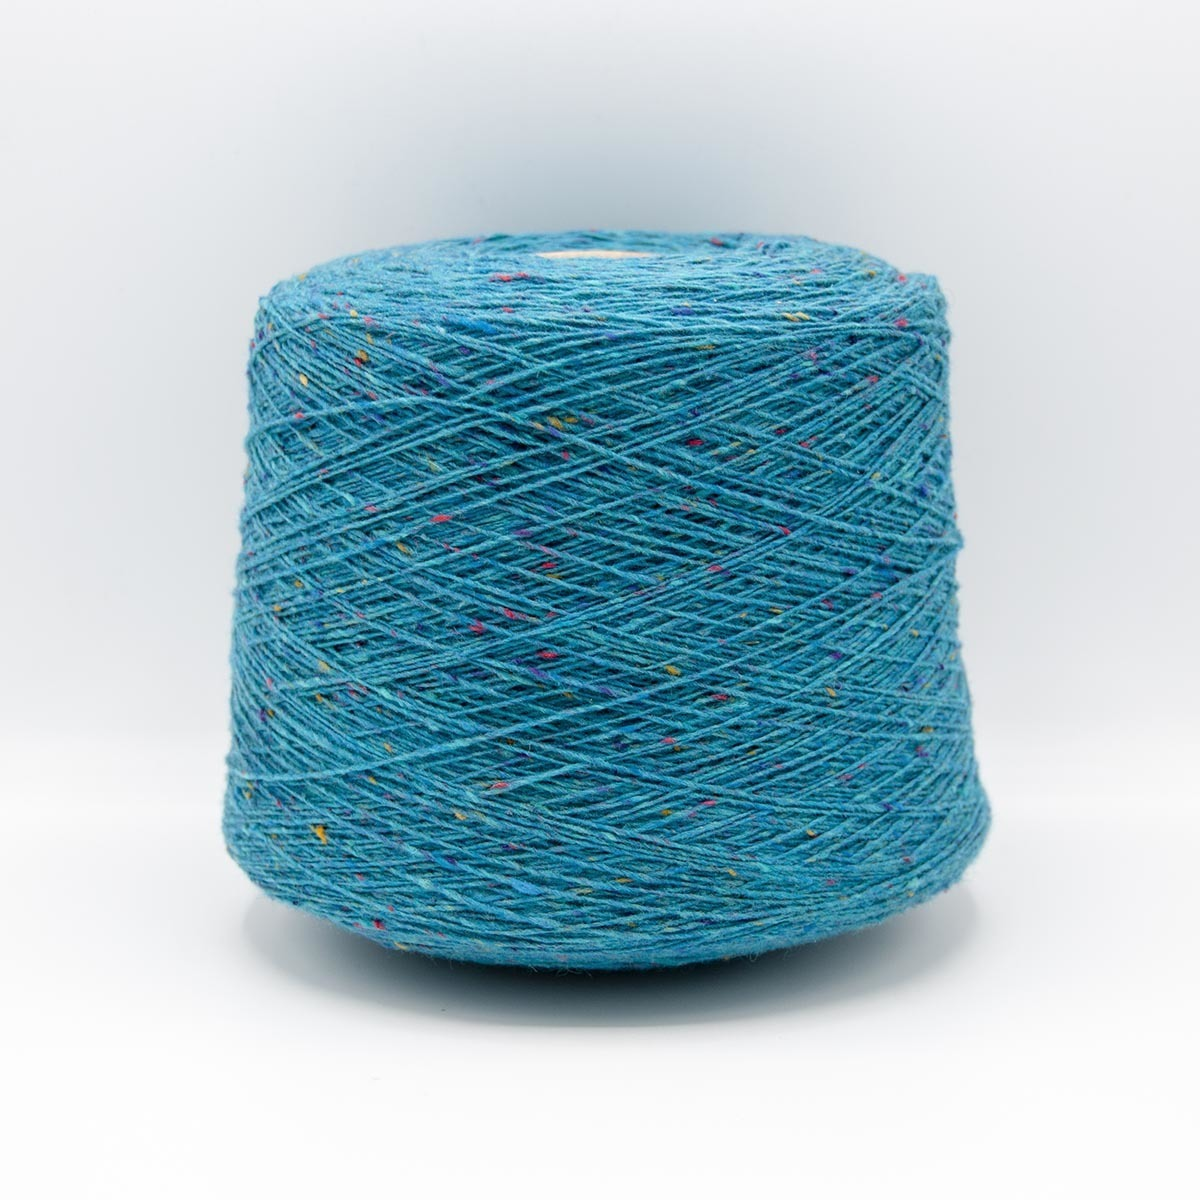 Knoll Yarns Soft Donegal (одинарный твид) - 5564